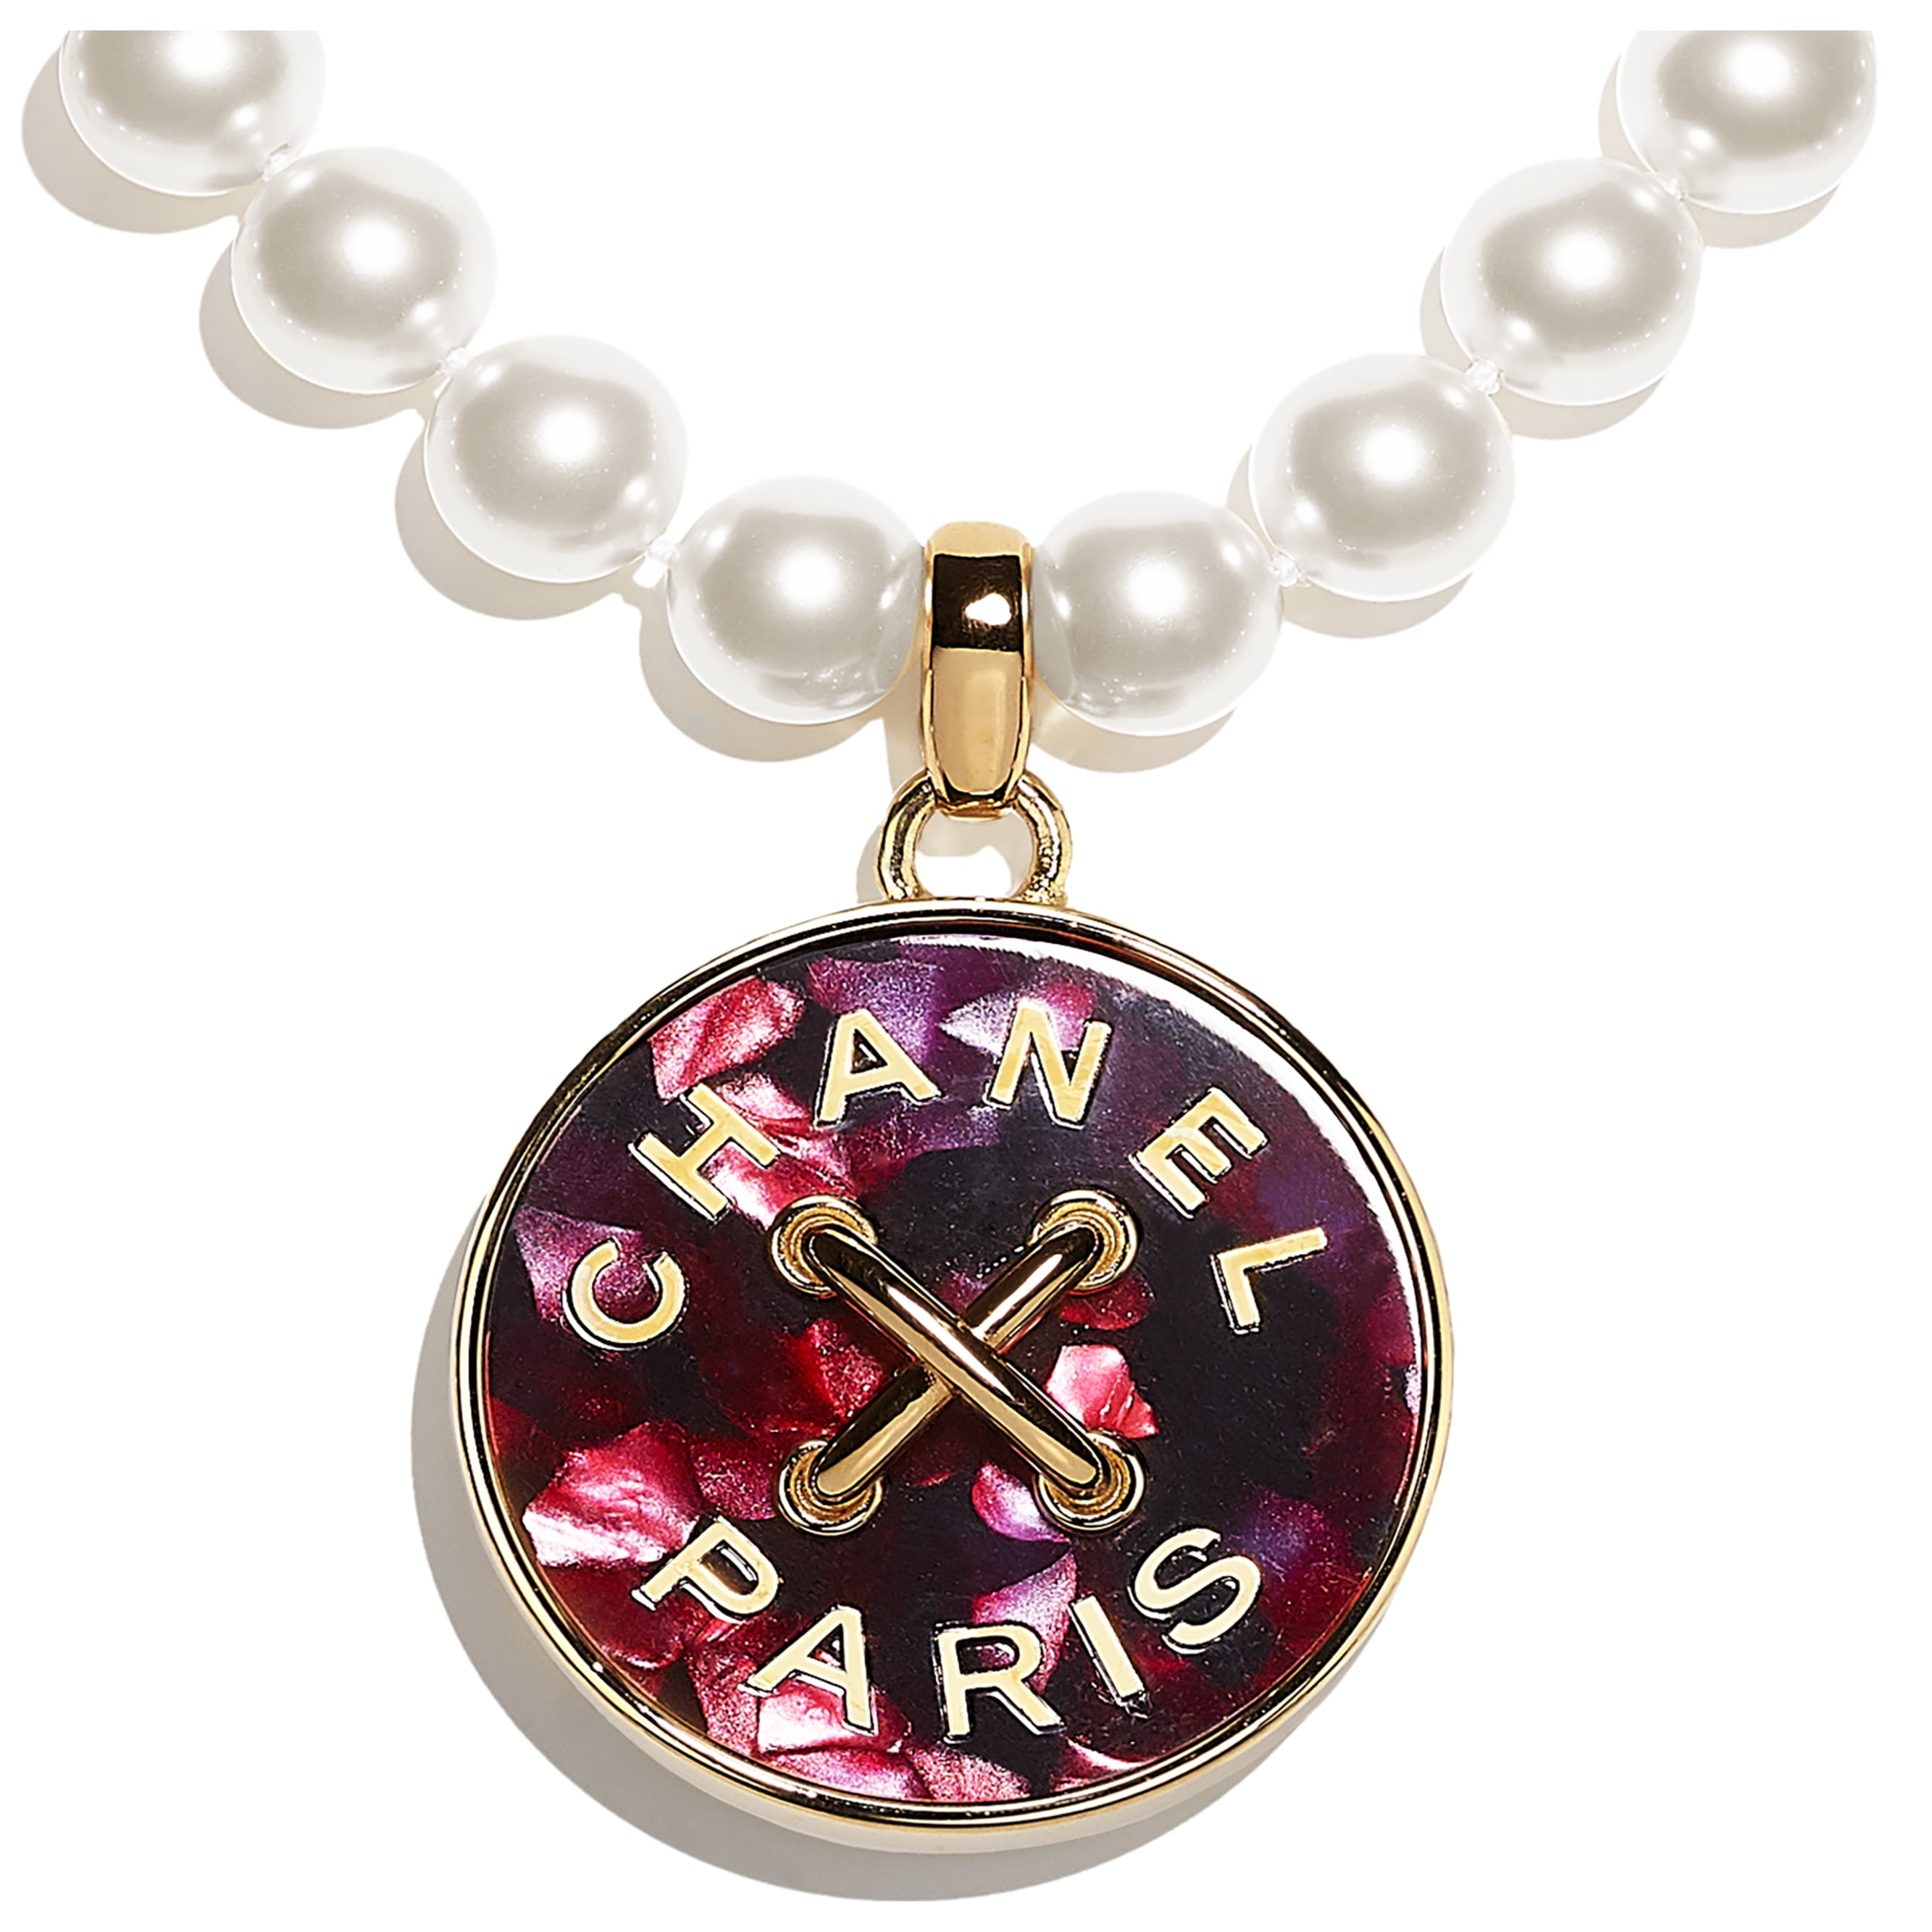 Necklace - Gold, Pearly White & Pink - Metal, Glass Pearls & Resin - CHANEL - Other view - see standard sized version